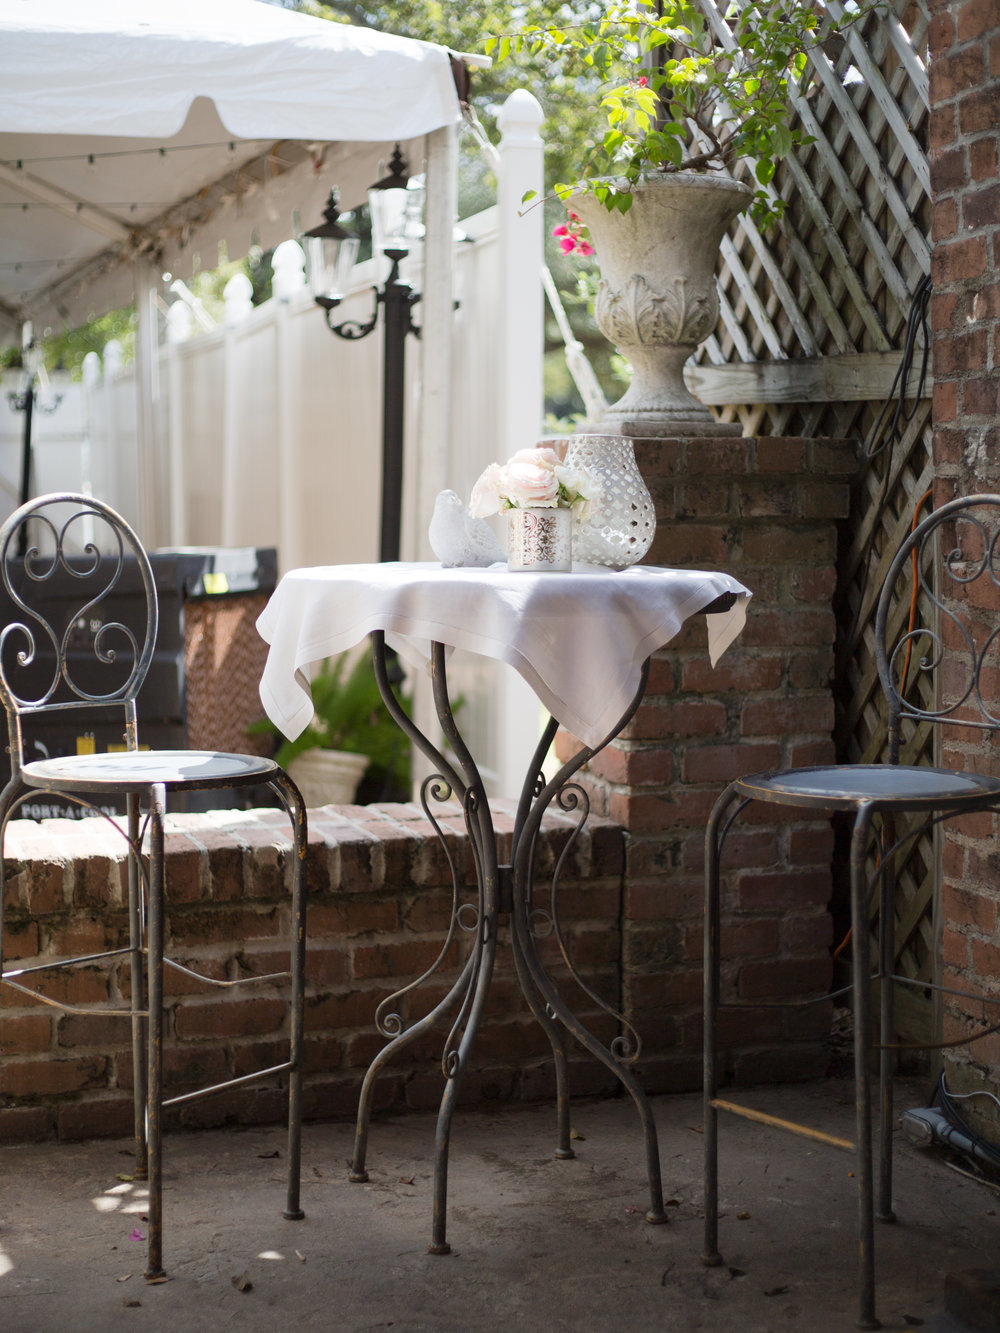 Before and After: Wedding Courtyard Makeover, Designer: Carla Aston, Photo: Tori Aston